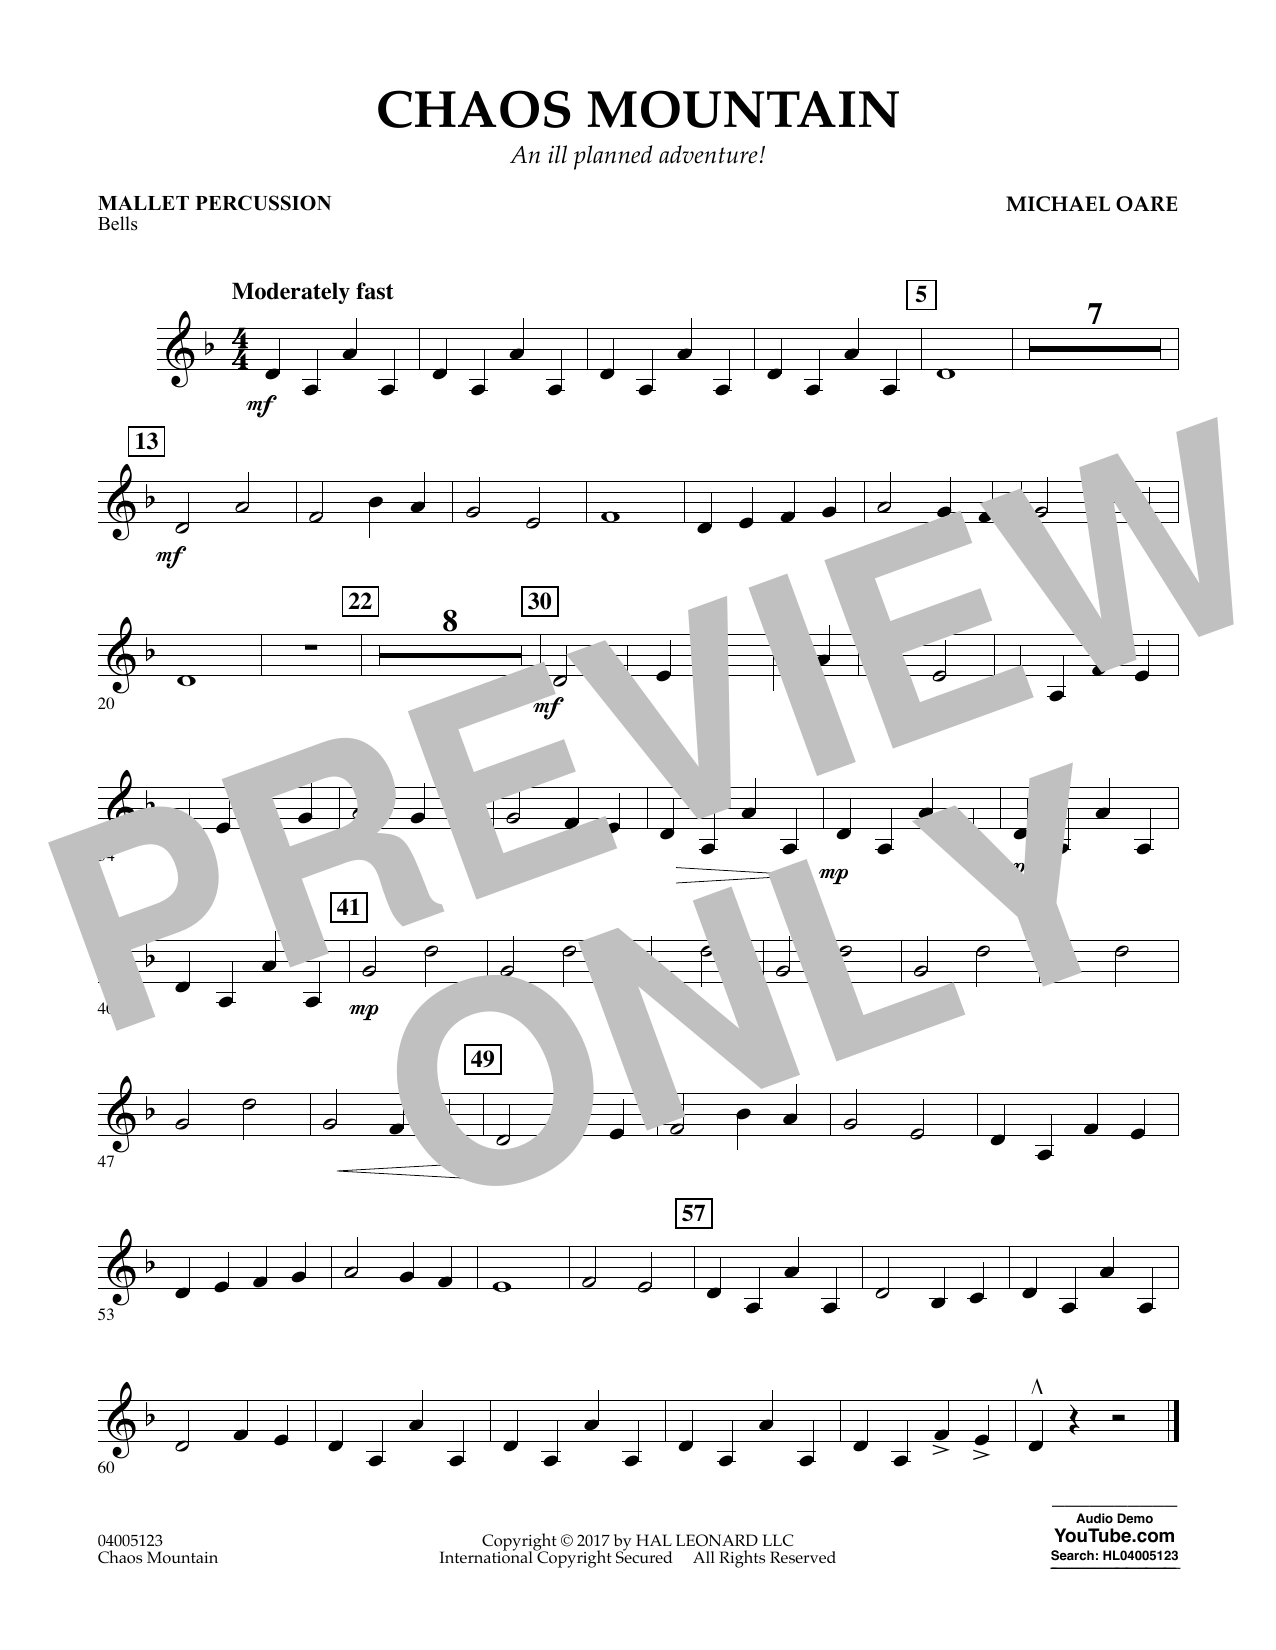 Michael Oare Chaos Mountain - Mallet Percussion sheet music notes and chords. Download Printable PDF.